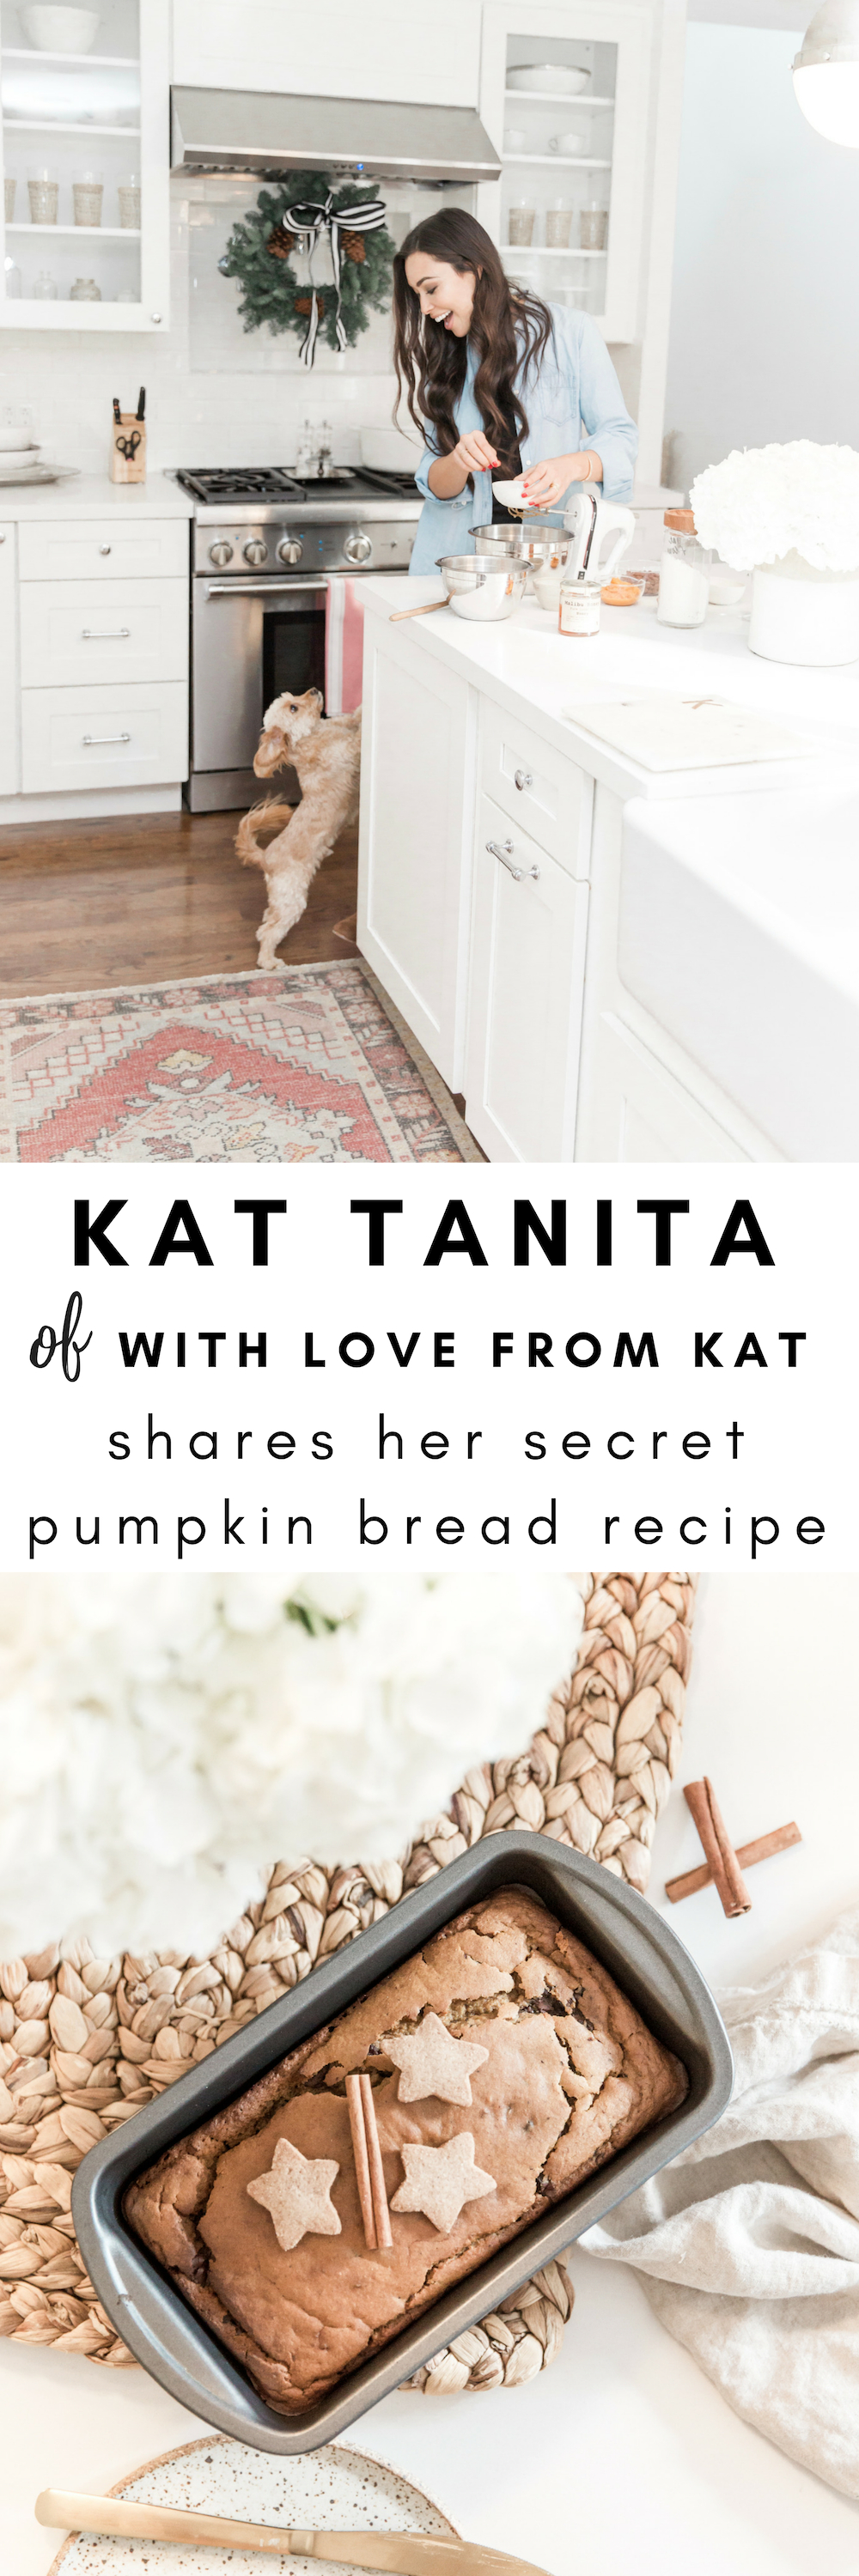 With Love From Kat Pumpkin Bread Recipe